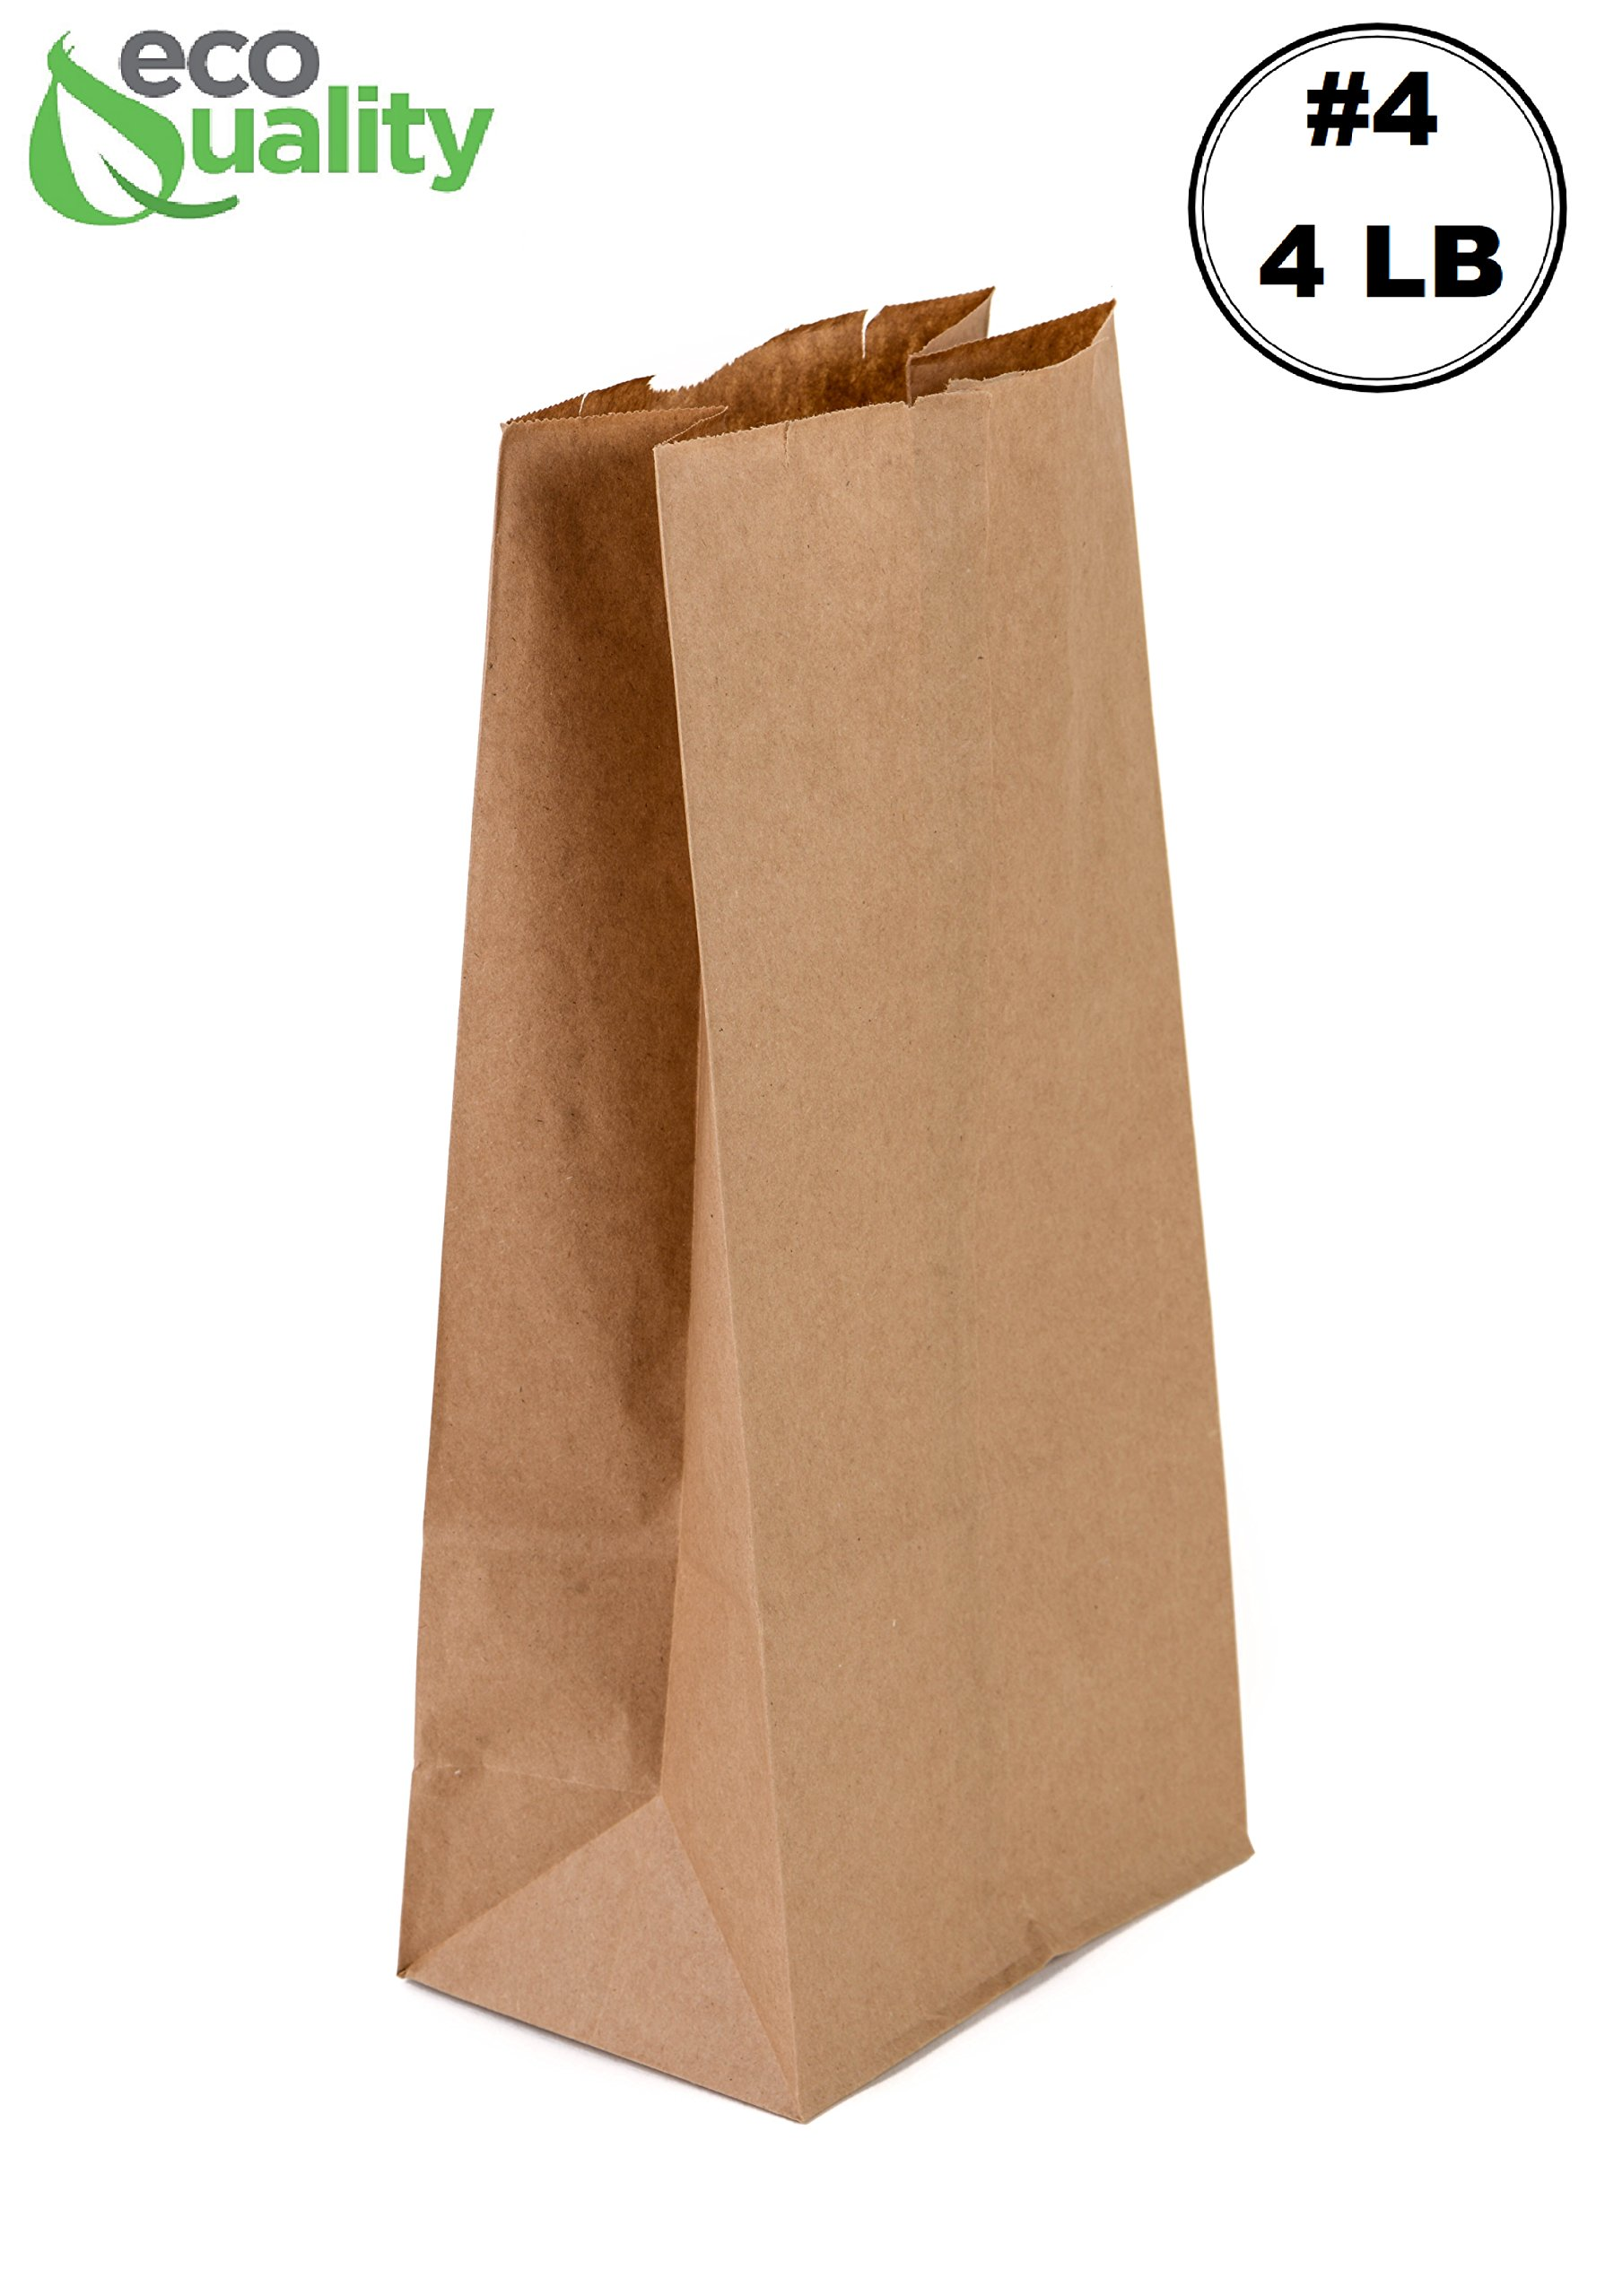 EcoQuality 500 Brown Kraft Paper Bag (4 lb) Small - Paper Lunch Bags, Small Snacks, Gift Bags, Grocery, Merchandise, Party Bags (4 7/8'' x 3'' x 10'') (4 Pound Capacity)